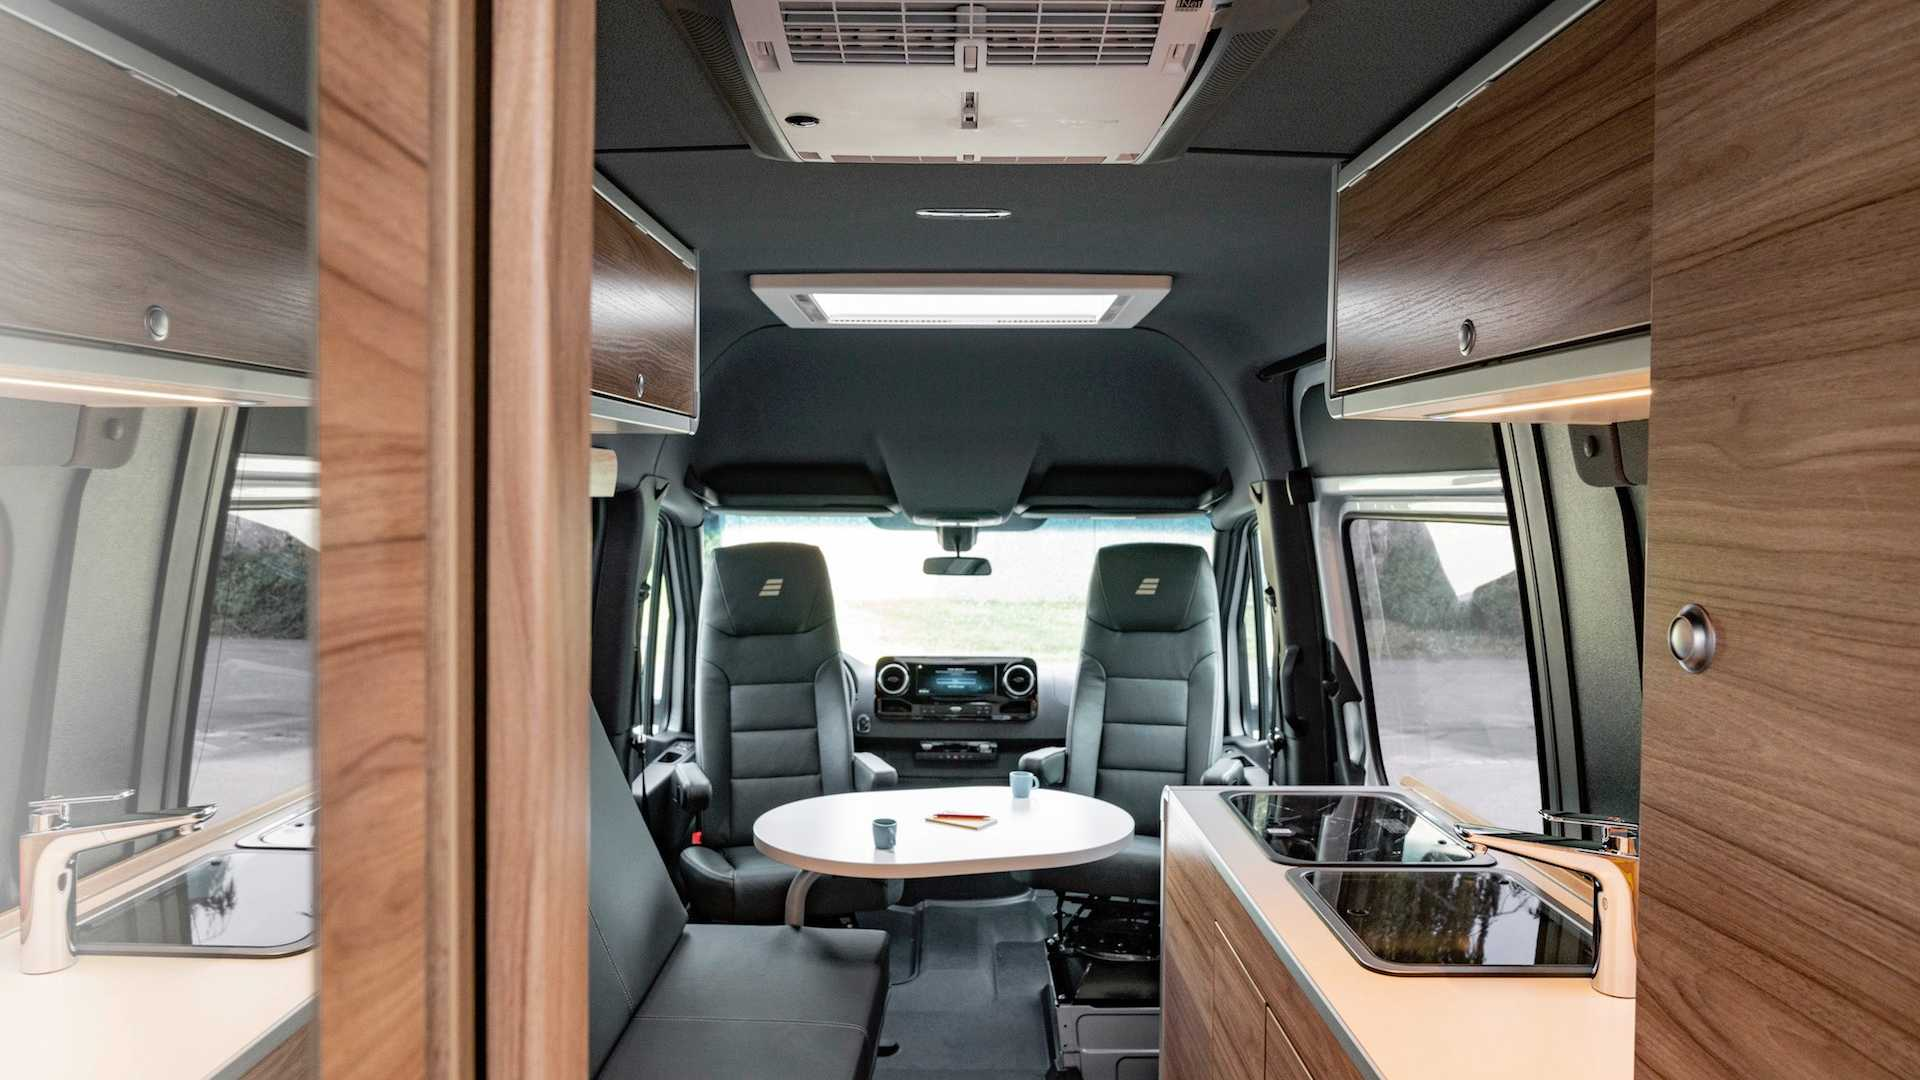 Hymer DuoCar S Camper Van Launches With Incredible Layout